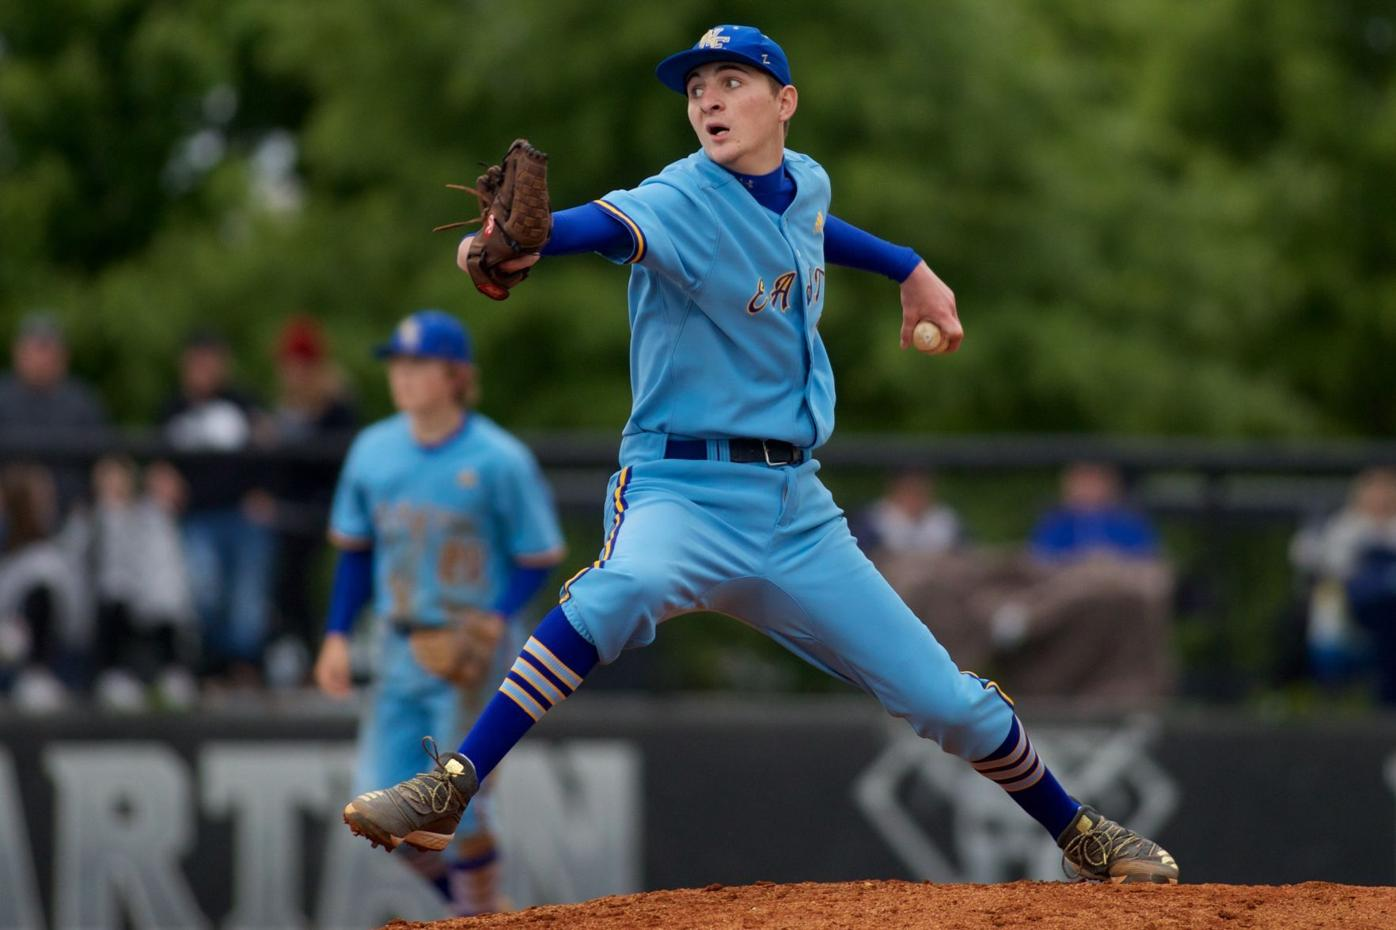 210510-sports- WE at SW baseball_outbound 8.jpg